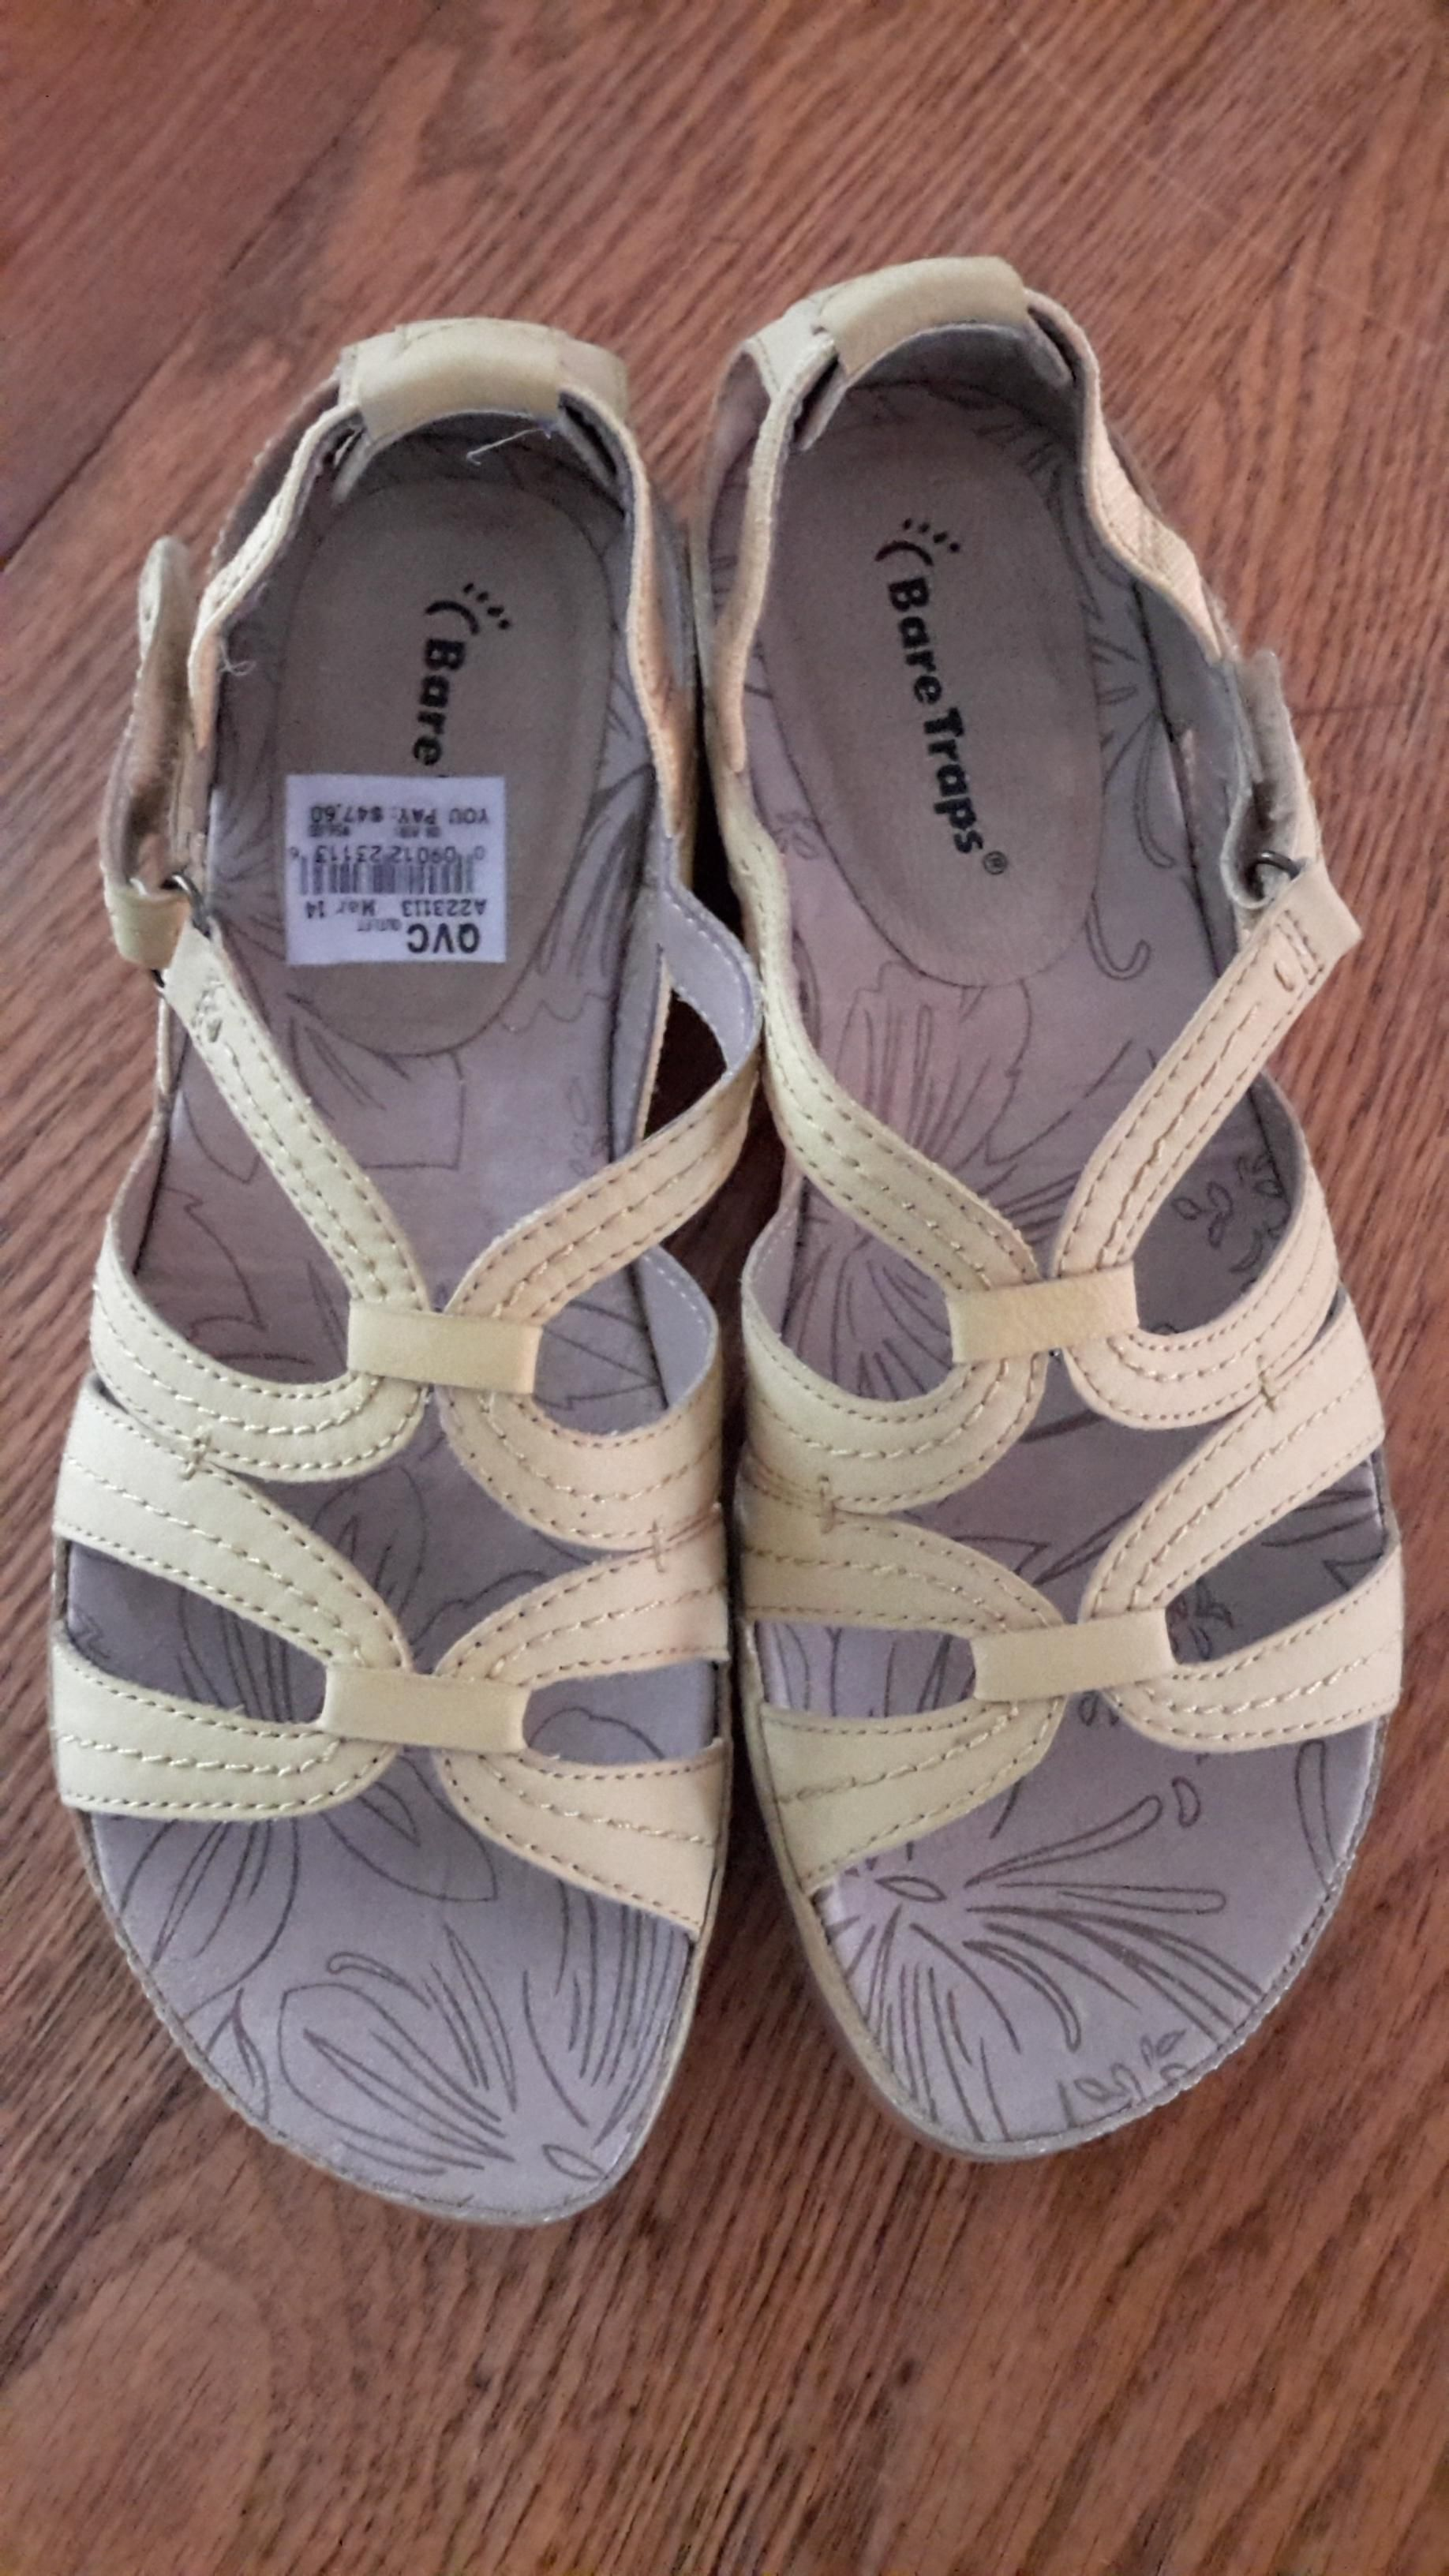 Bare Traps Daphne Yellow Sandals. Get the must-have sandals of this season! These Bare Traps Daphne Yellow Sandals are a top 10 member favorite on Tradesy. Save on yours before they're sold out!